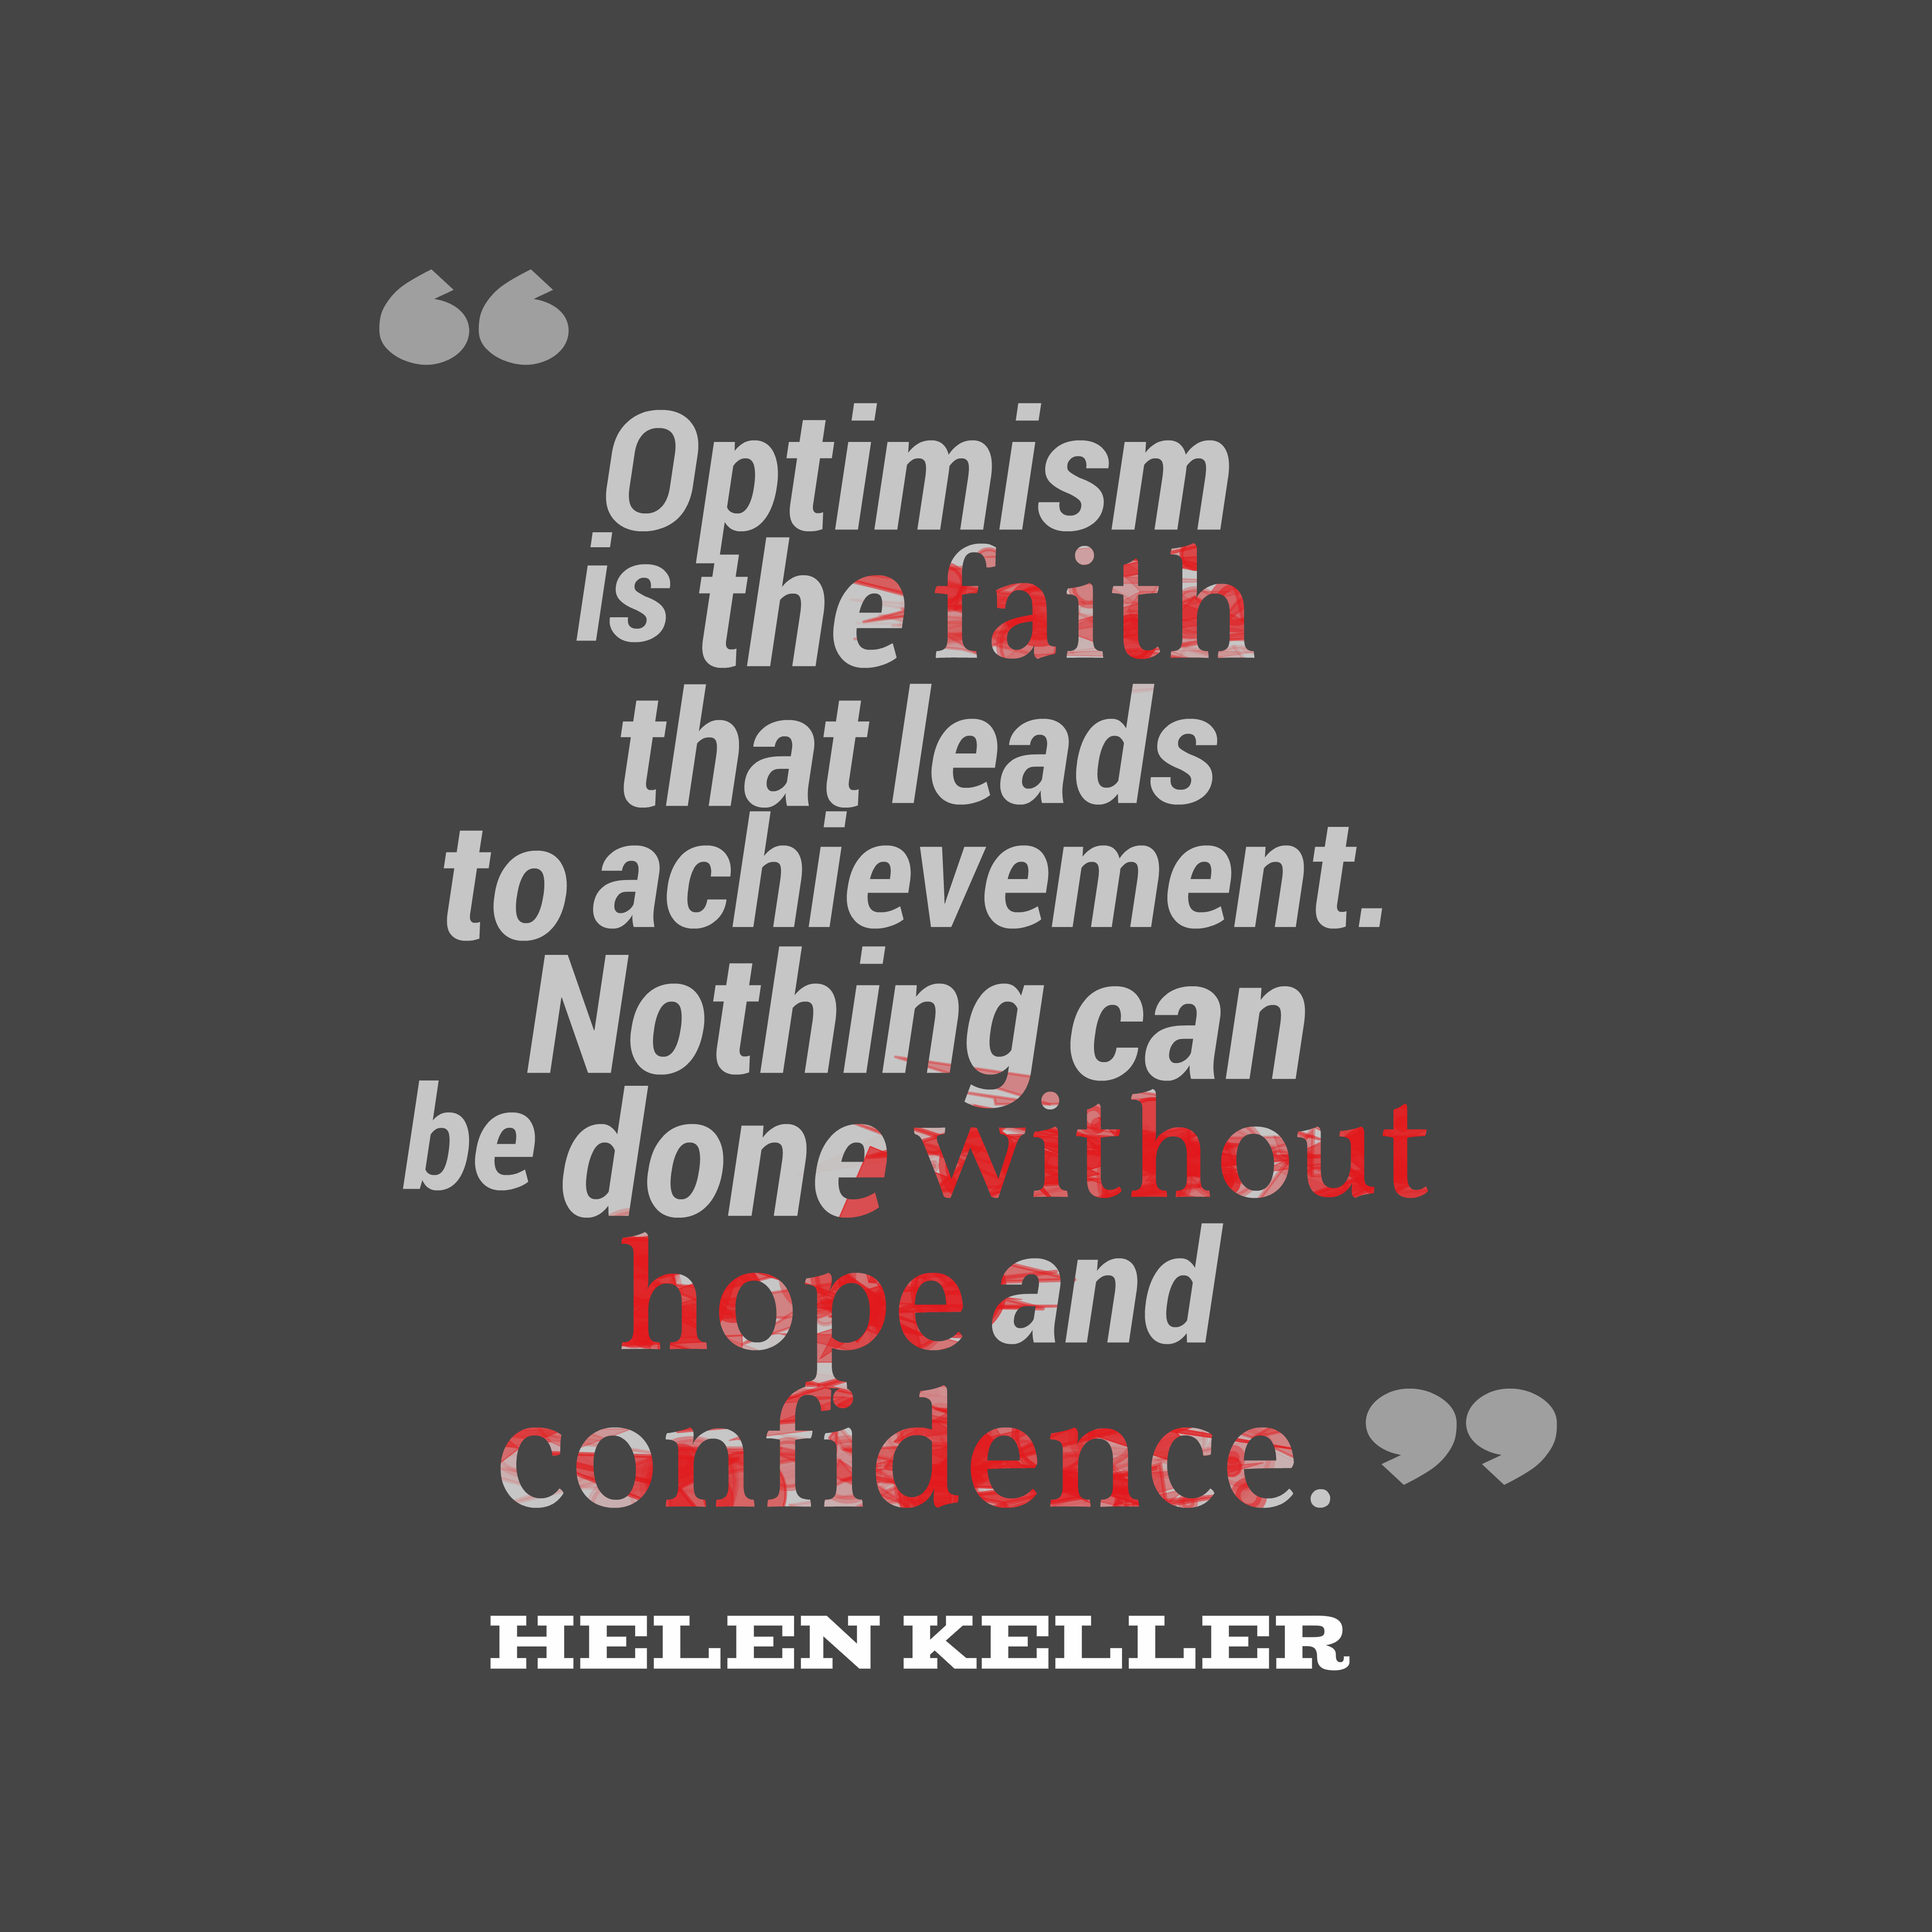 Quotes About Optimism 20 Best Motivational Quotes Images